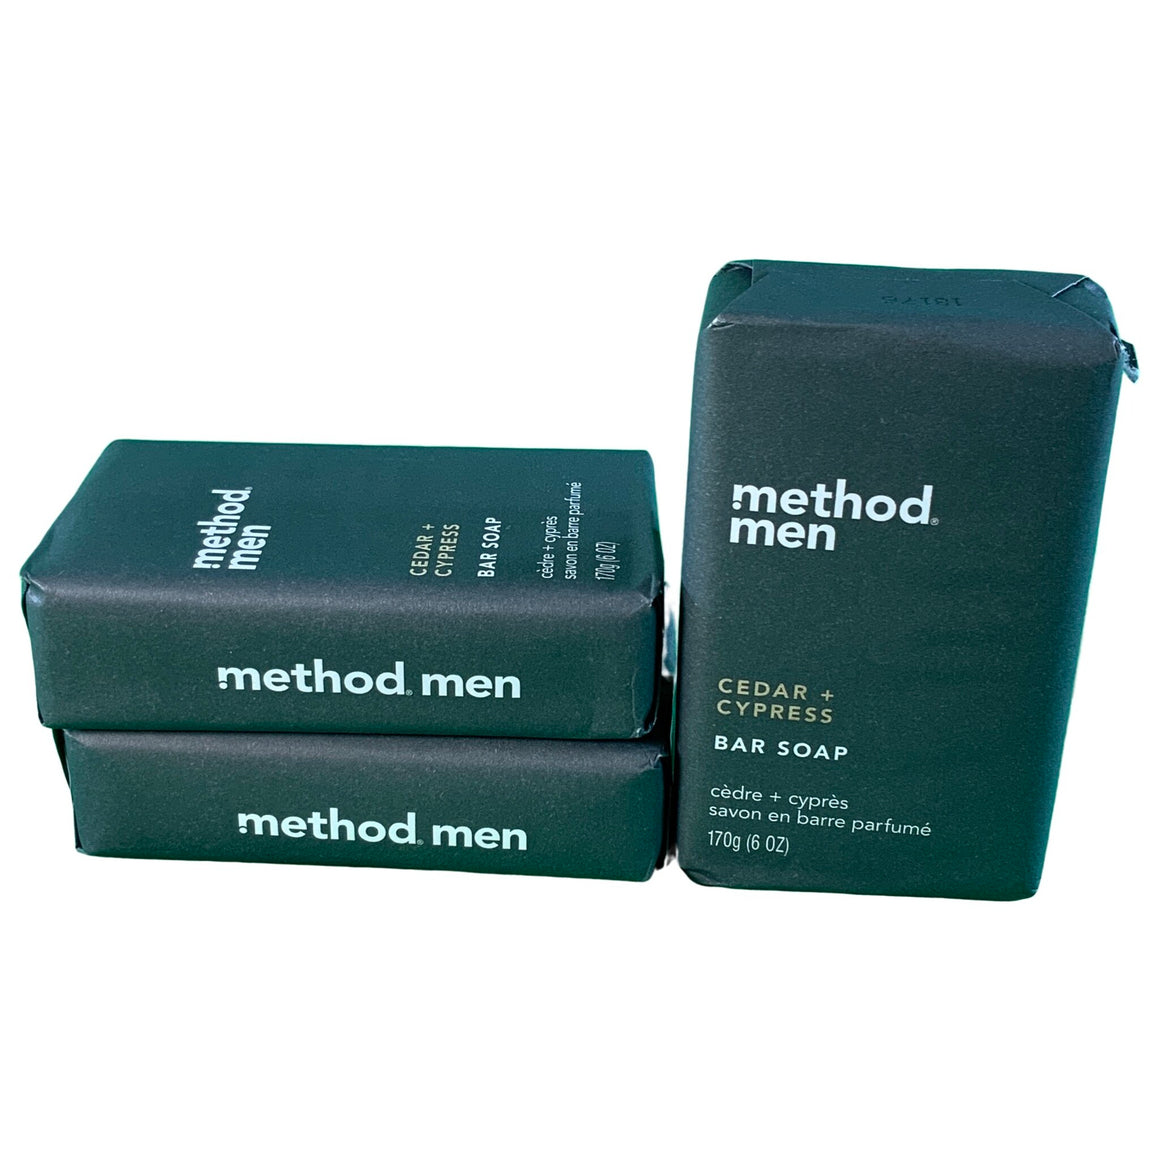 Cedar + Cyprus Bar Soap - 6Oz - Method Men'S